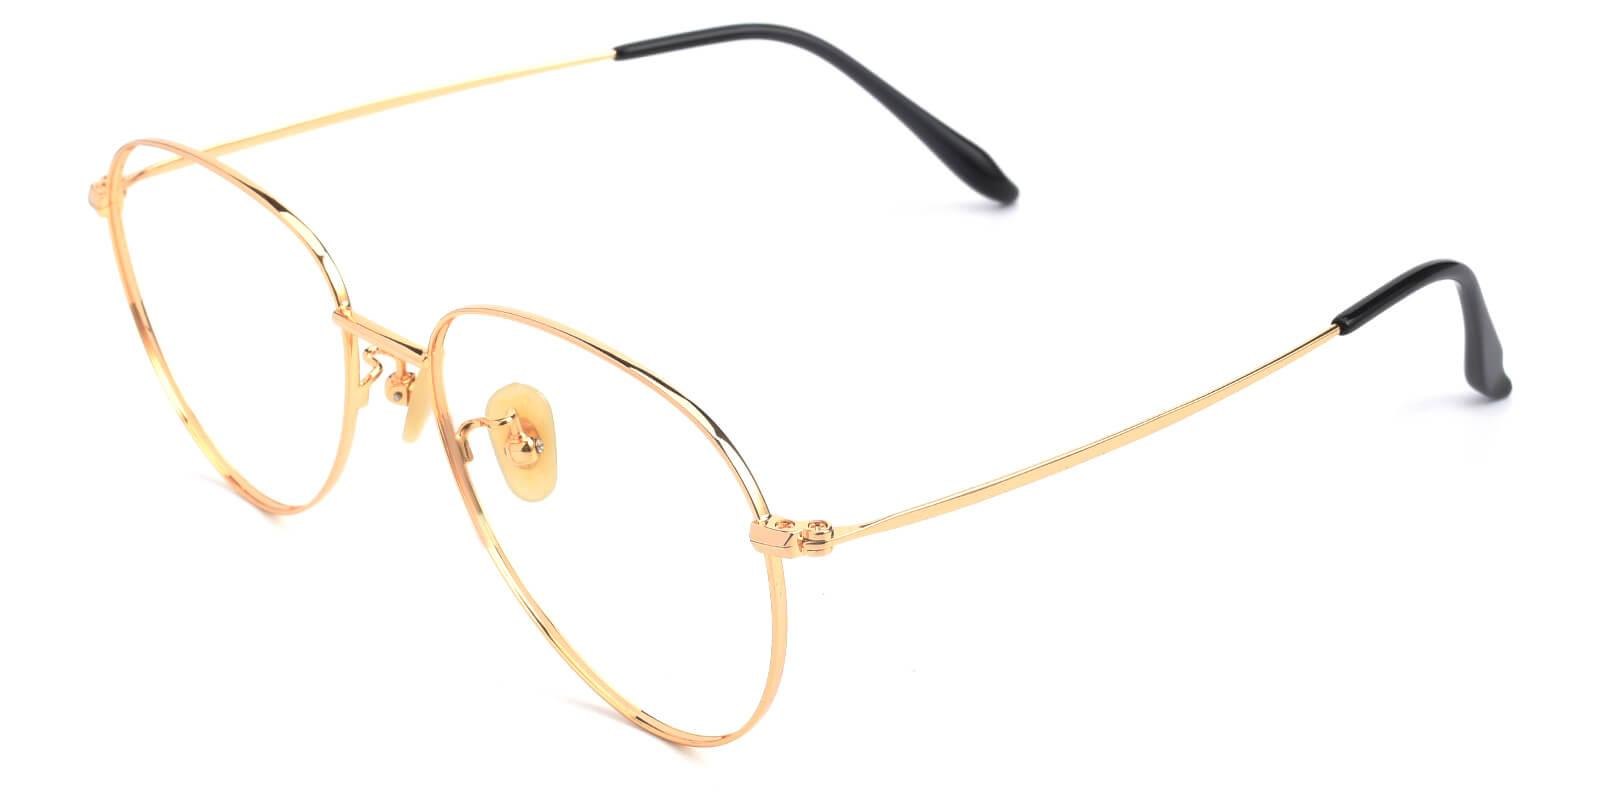 Epilogue-Gold-Round-Titanium-Eyeglasses-additional1